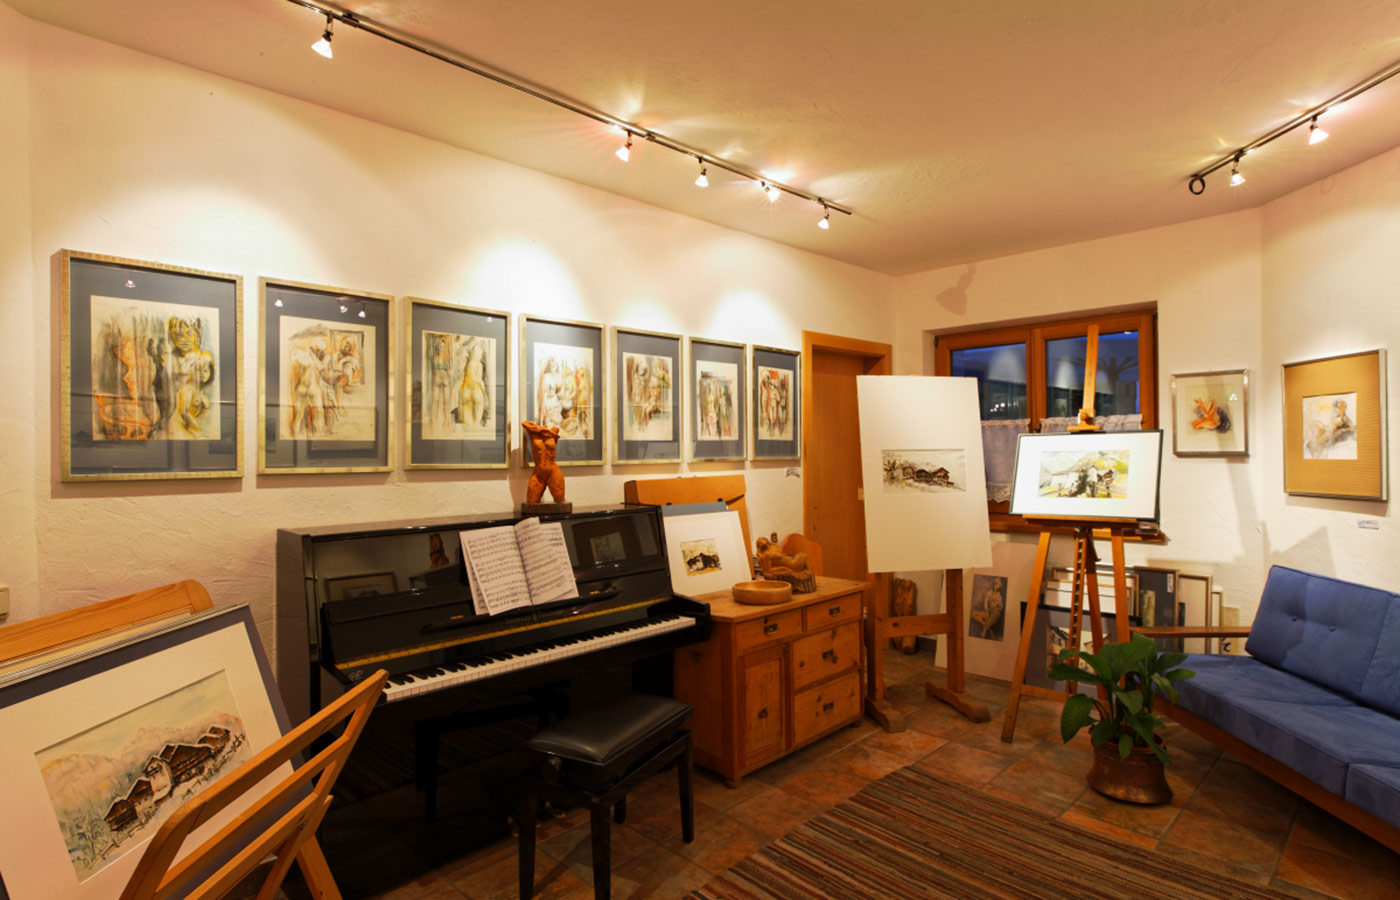 Paintings and a piano at the Atelier of Garnì Raetia